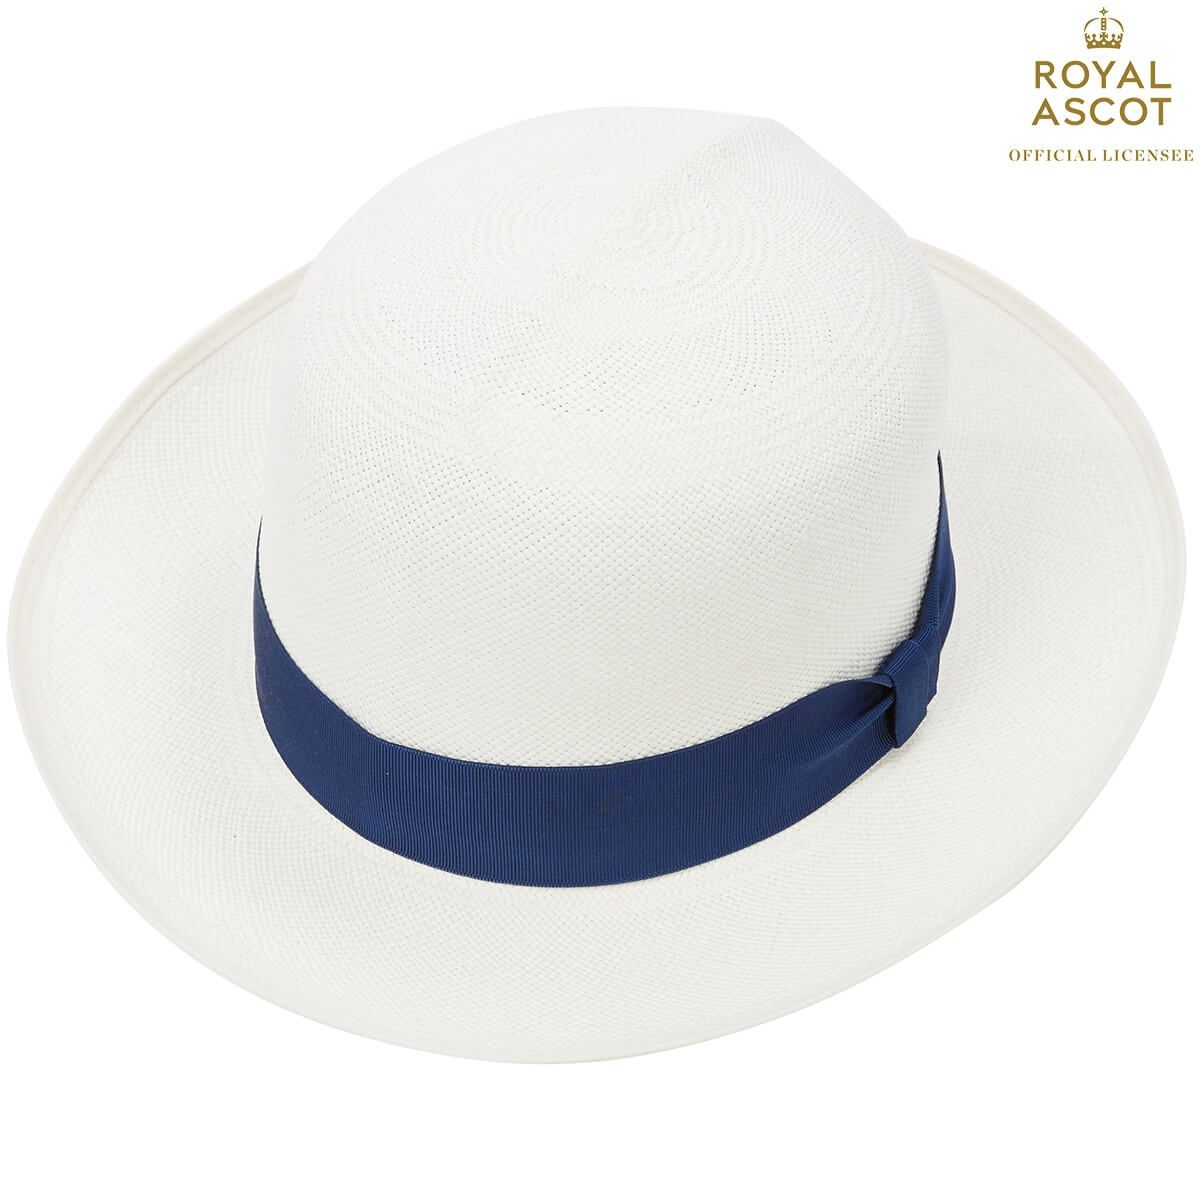 Thomas Superfine Folder Panama Hat With Navy Band - White Bleached in size 61